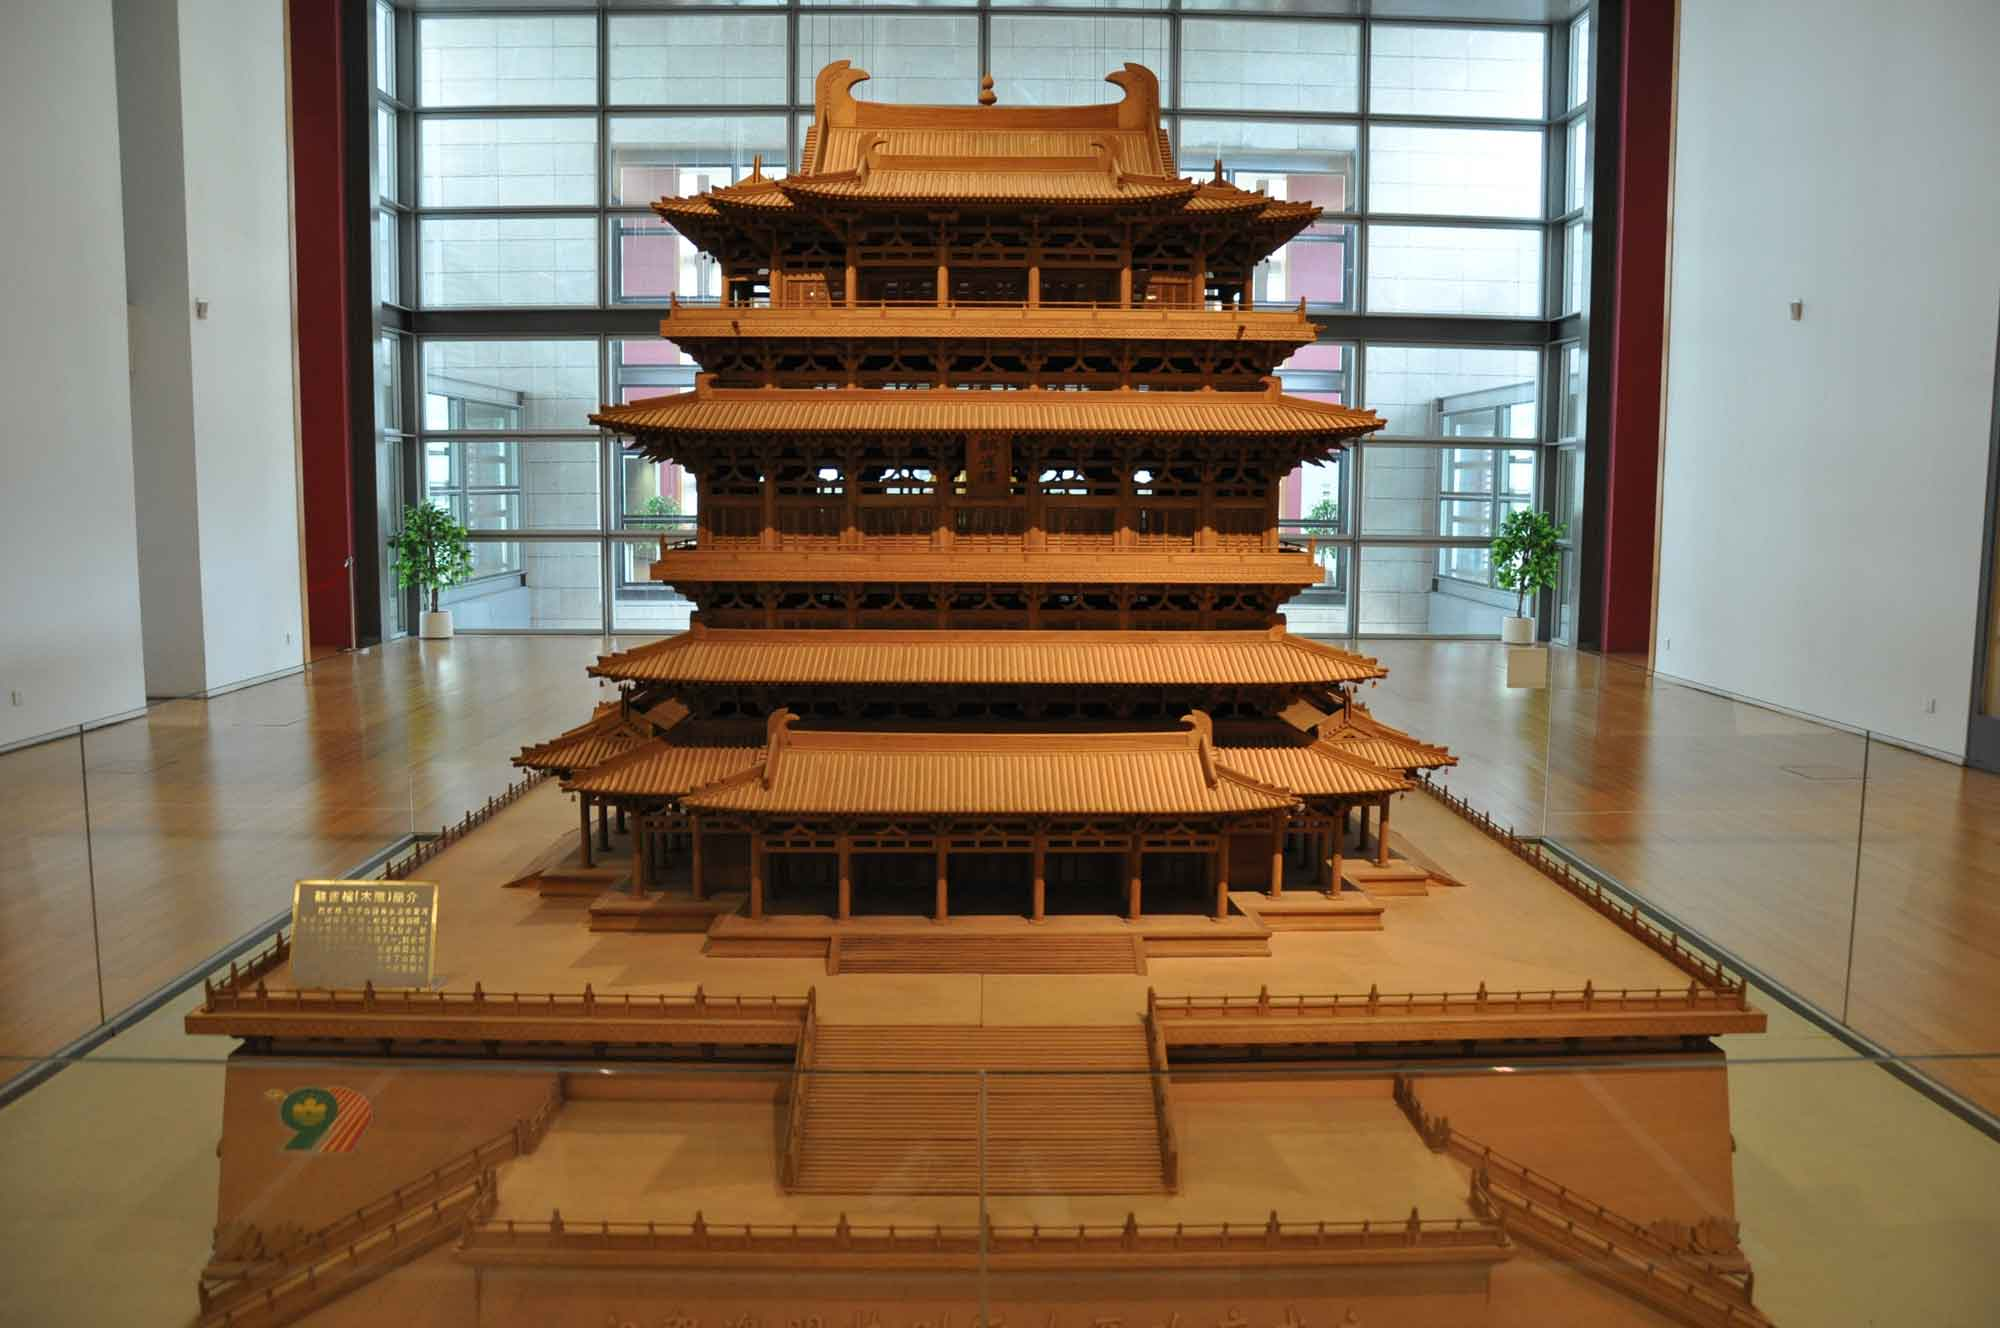 Handover Gifts Museum traditional Chinese pagoda